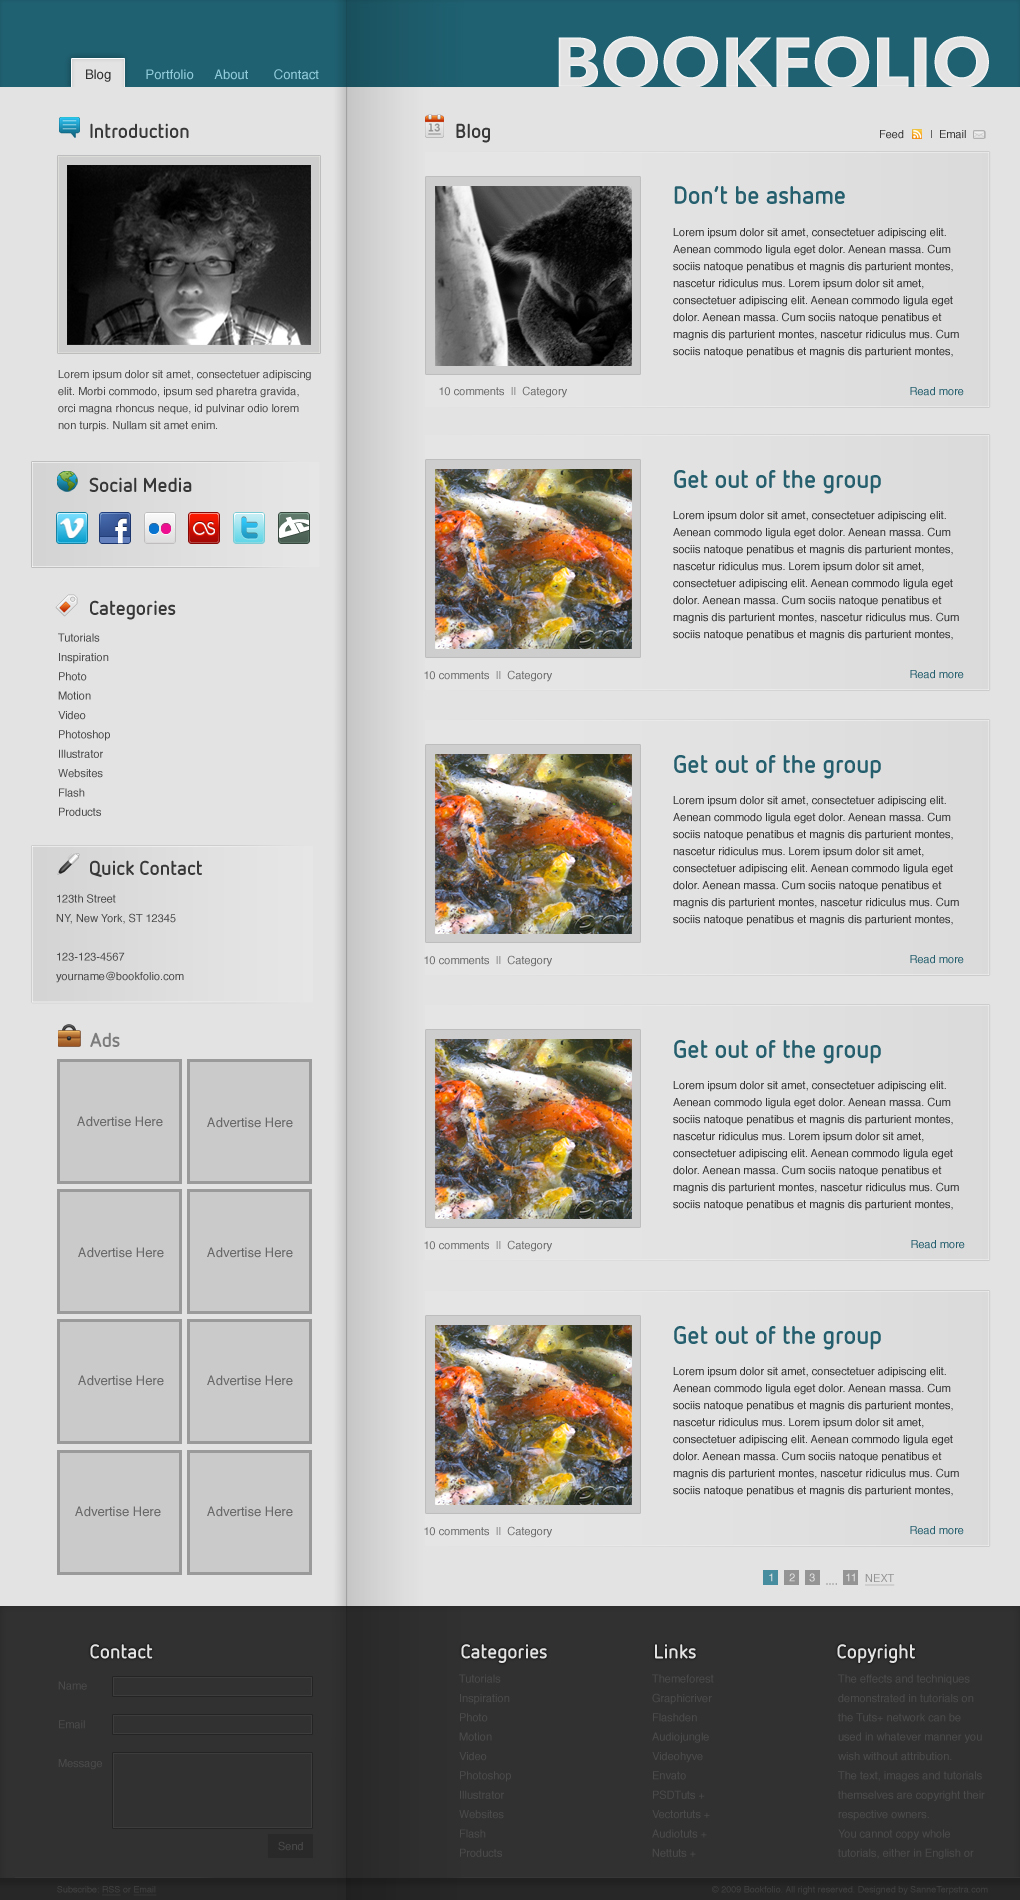 BookFolio - Blog / Personal site - PSD File  BookFolio - The blog page